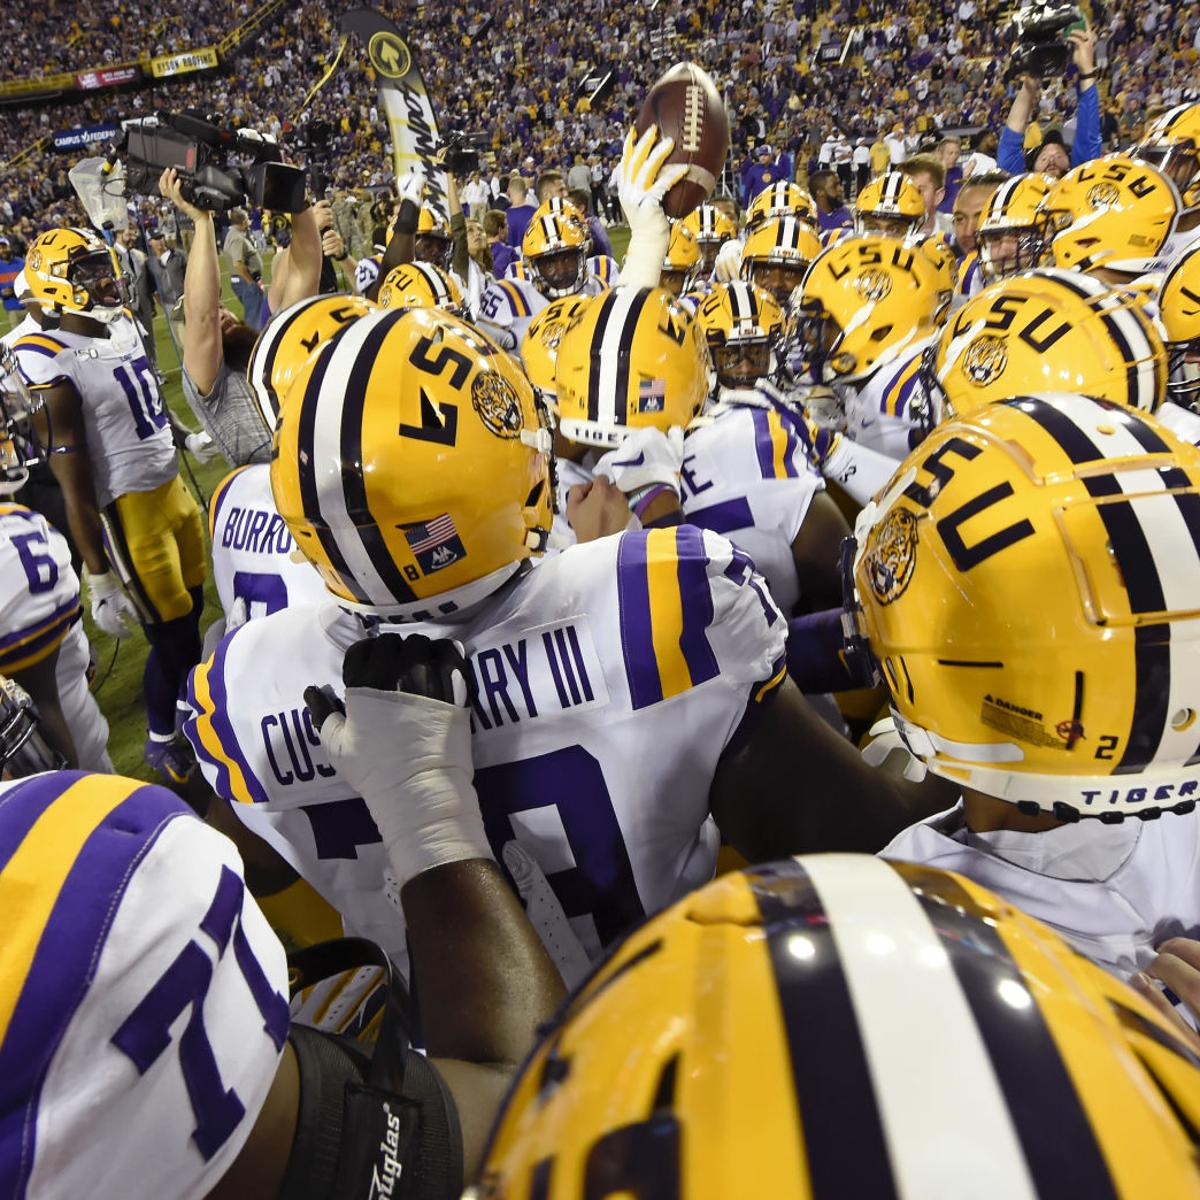 Lsu Vs Missouri Who Ya Got Advocate Experts Make Their Picks For Saturday S Game Lsu Theadvocate Com